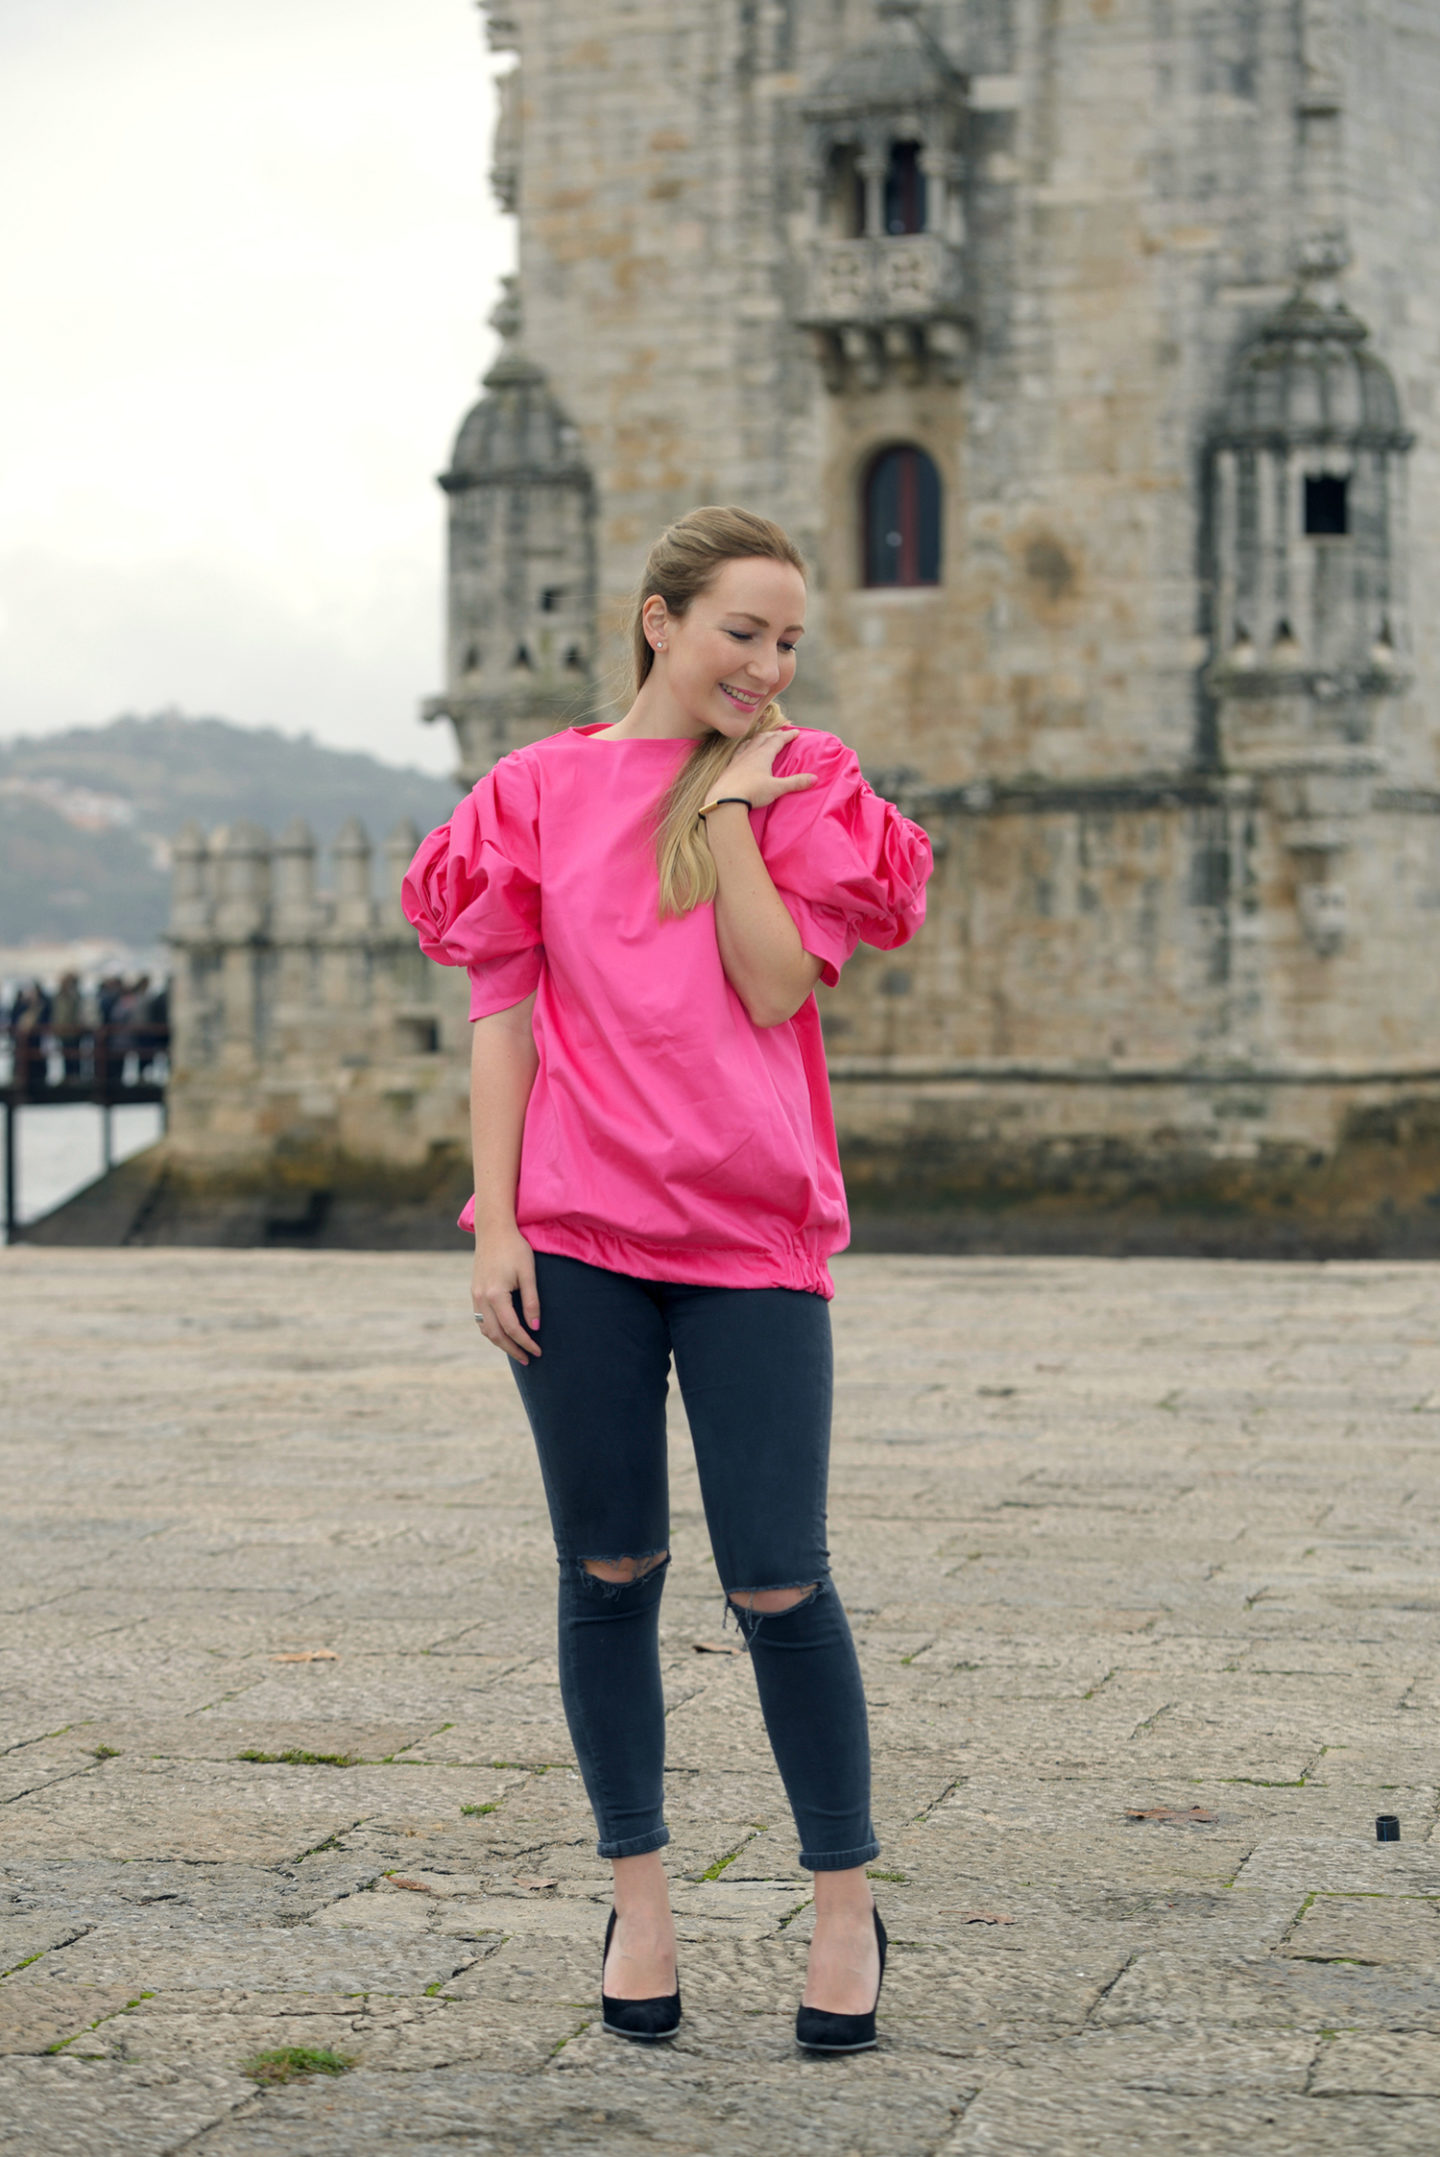 Wearing Trendy Label at Torre de Belém